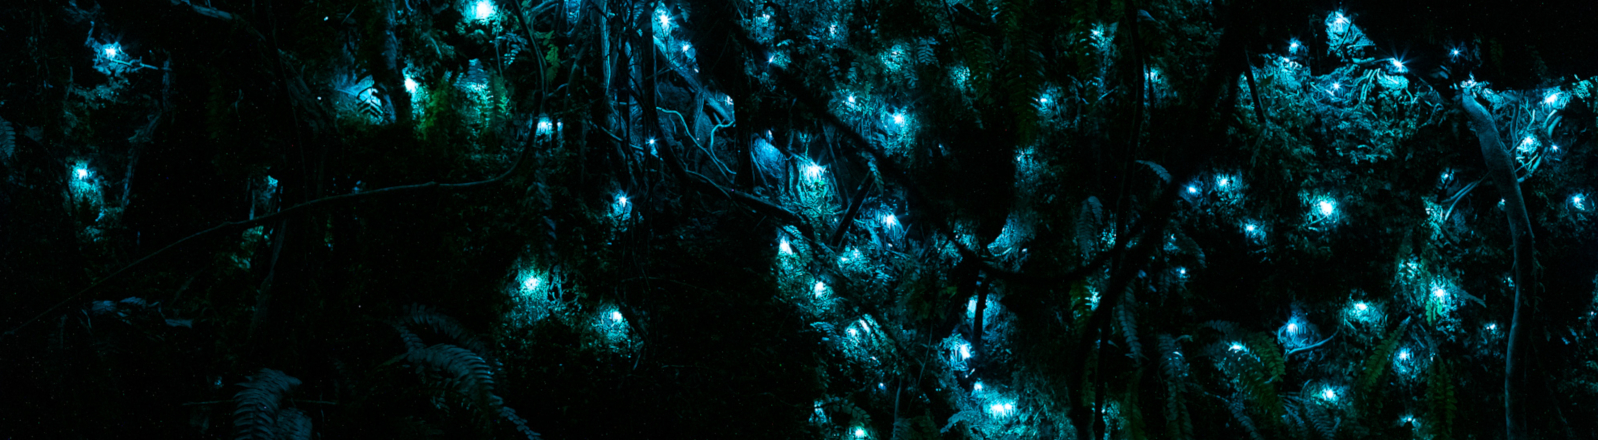 Fairylights (aka pūrātoke/glowworms) are stread across the forest at night.